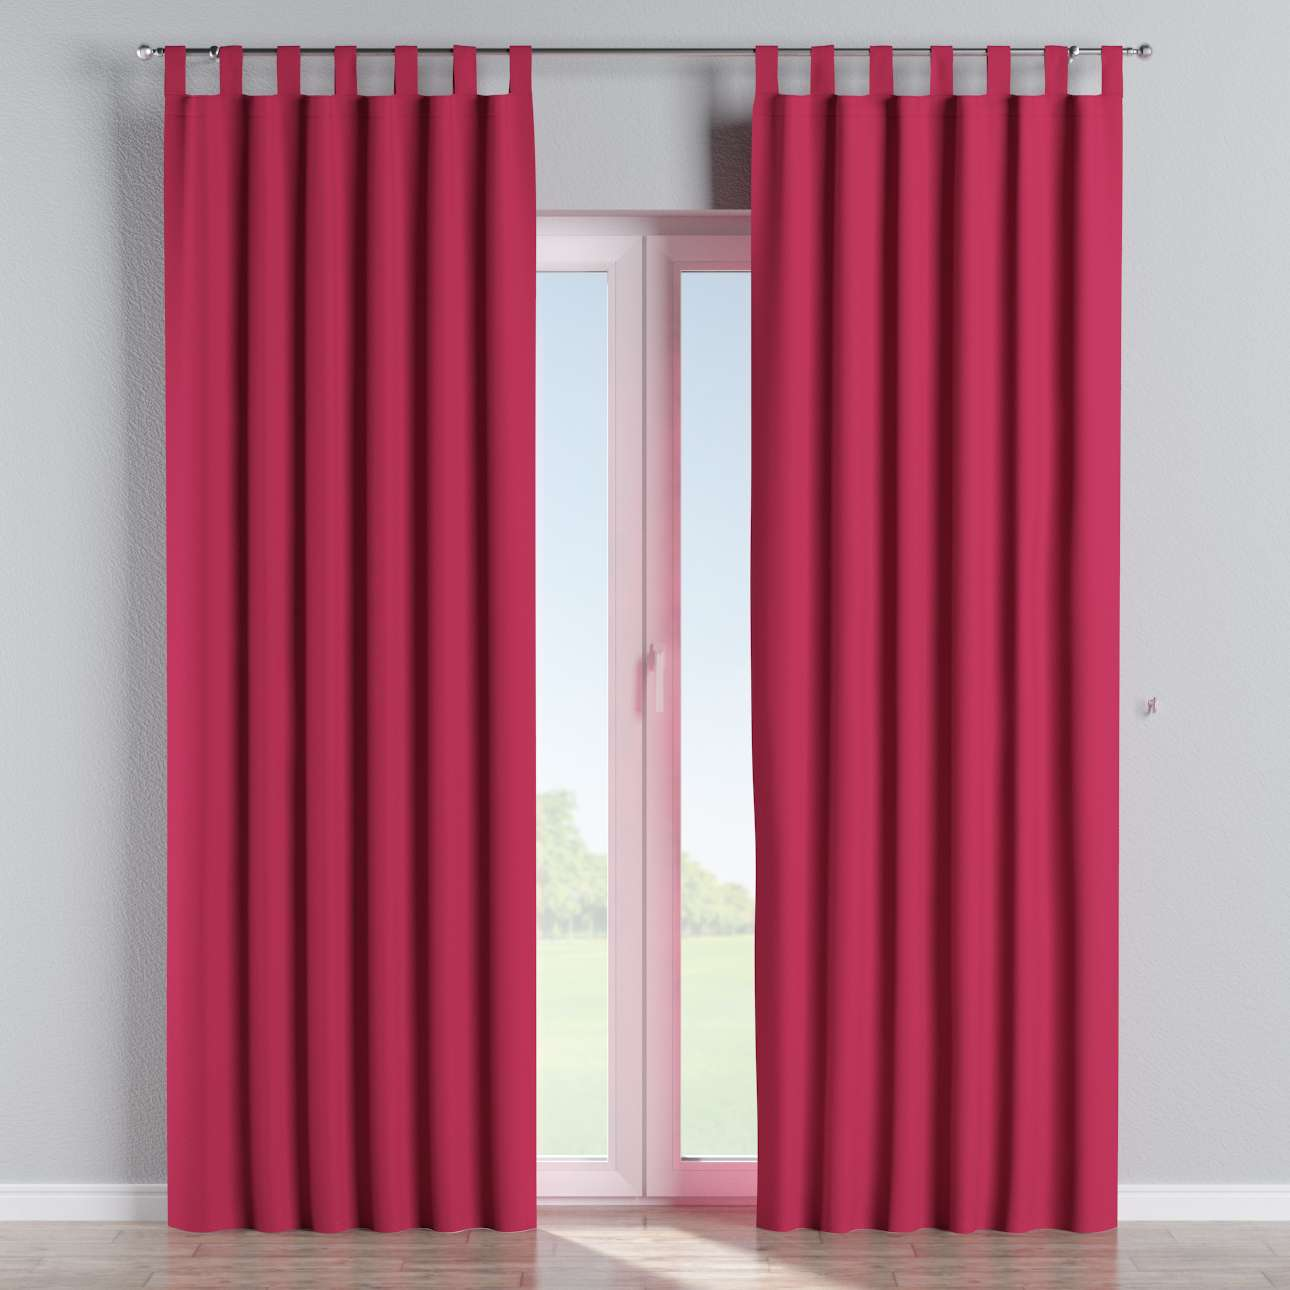 102 Inch Curtains Burgundy Color Curtainsburgundy Color Curtains Wiki Home